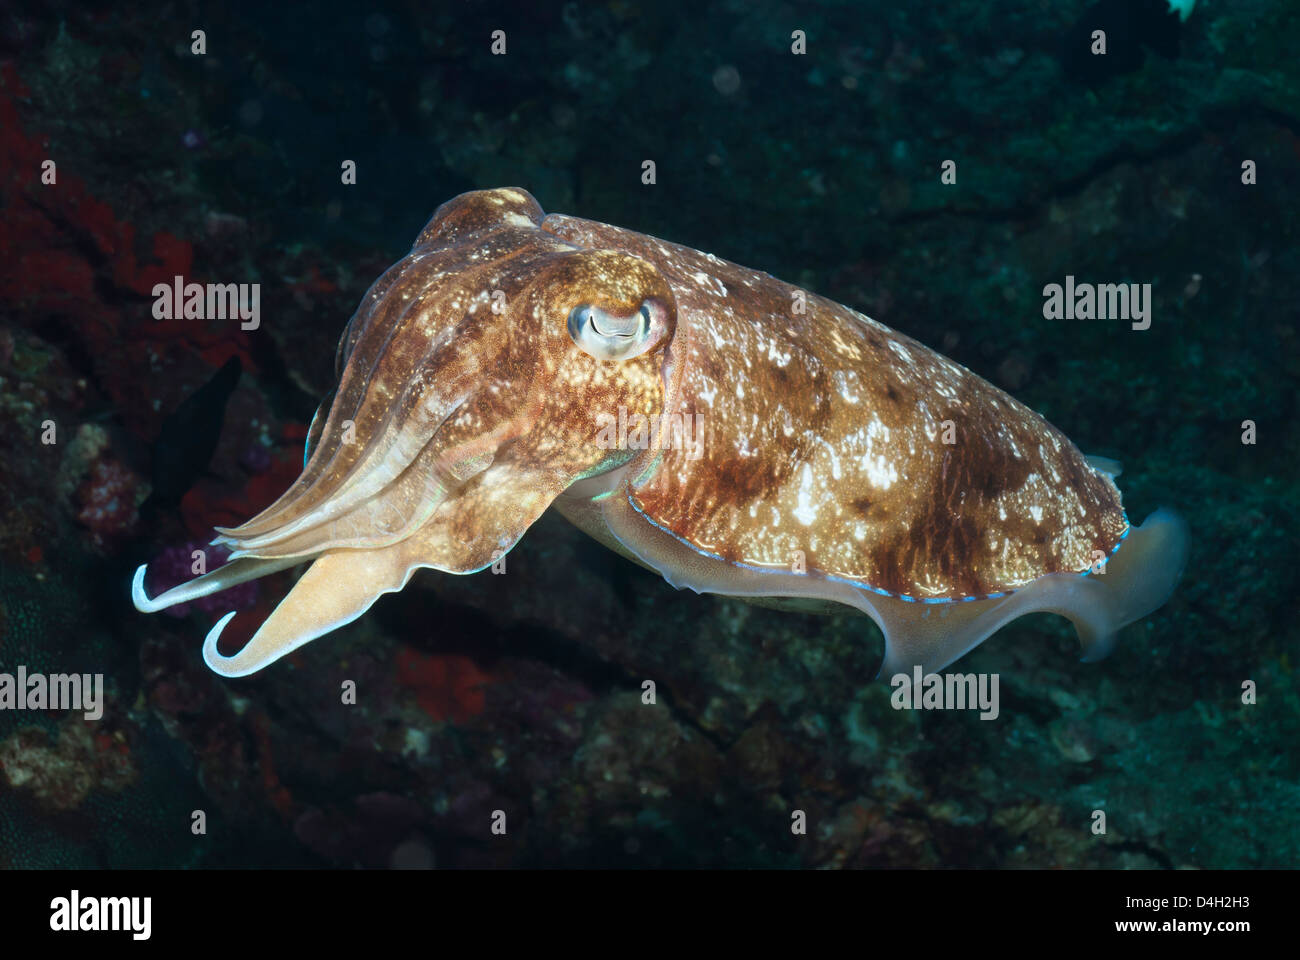 Broadclub cuttlefish (Sepia Latimanus), Southern Thailand, Andaman Sea, Indian Ocean, Southeast Asia - Stock Image